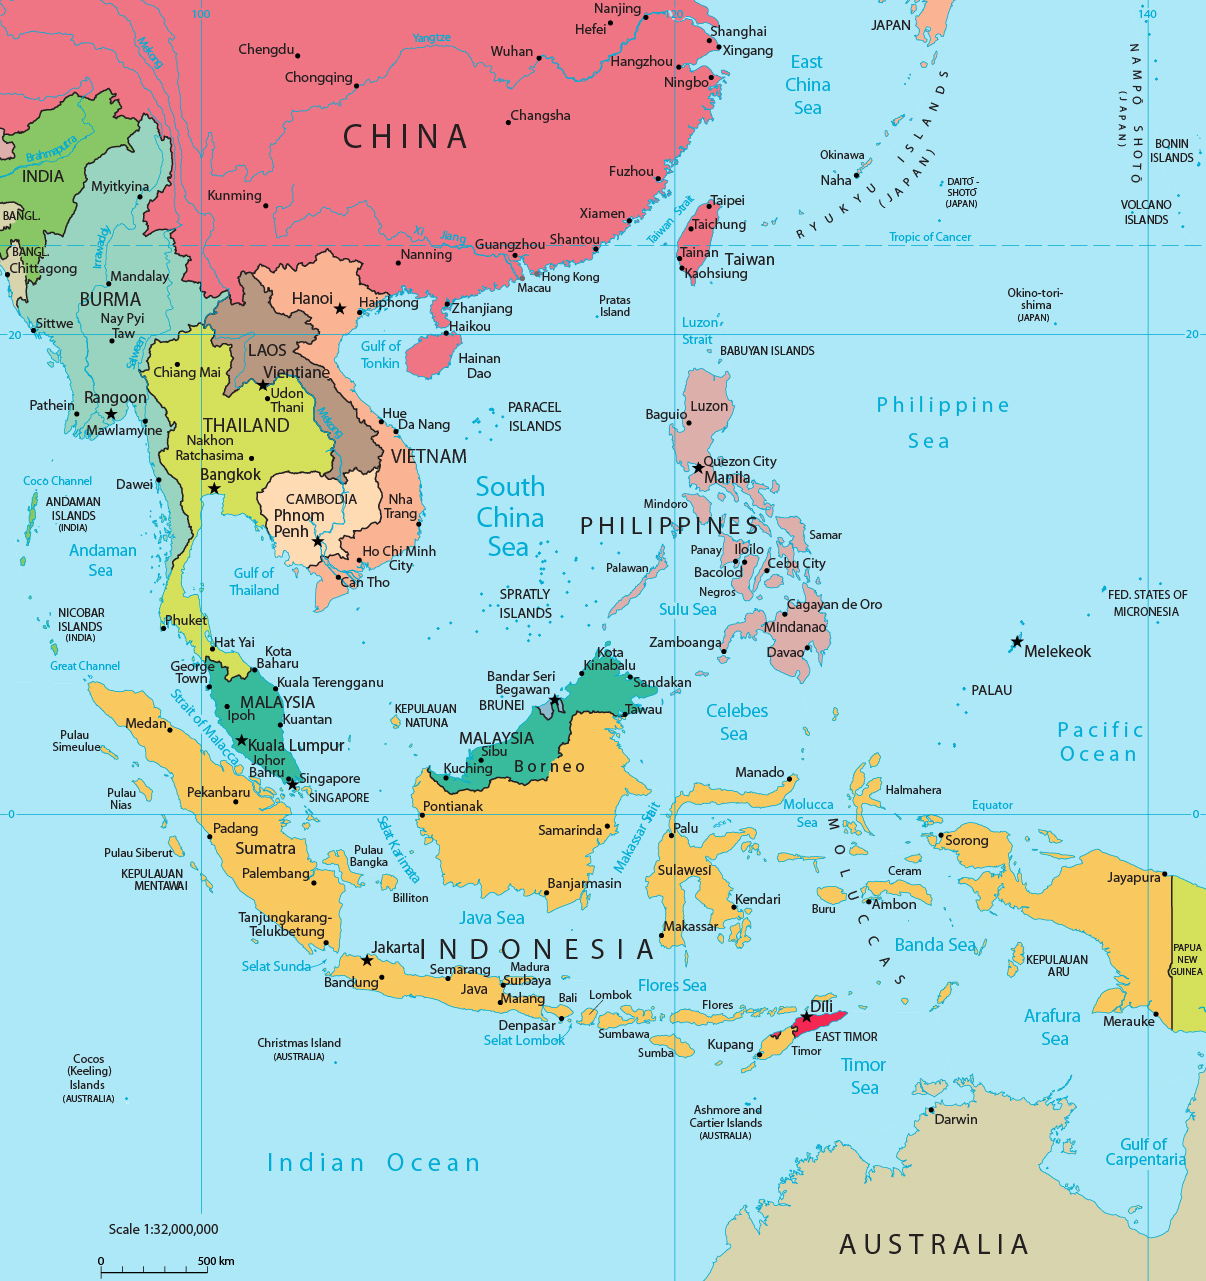 Map of southeast asia indonesia malaysia thailand southeast asia map gumiabroncs Choice Image